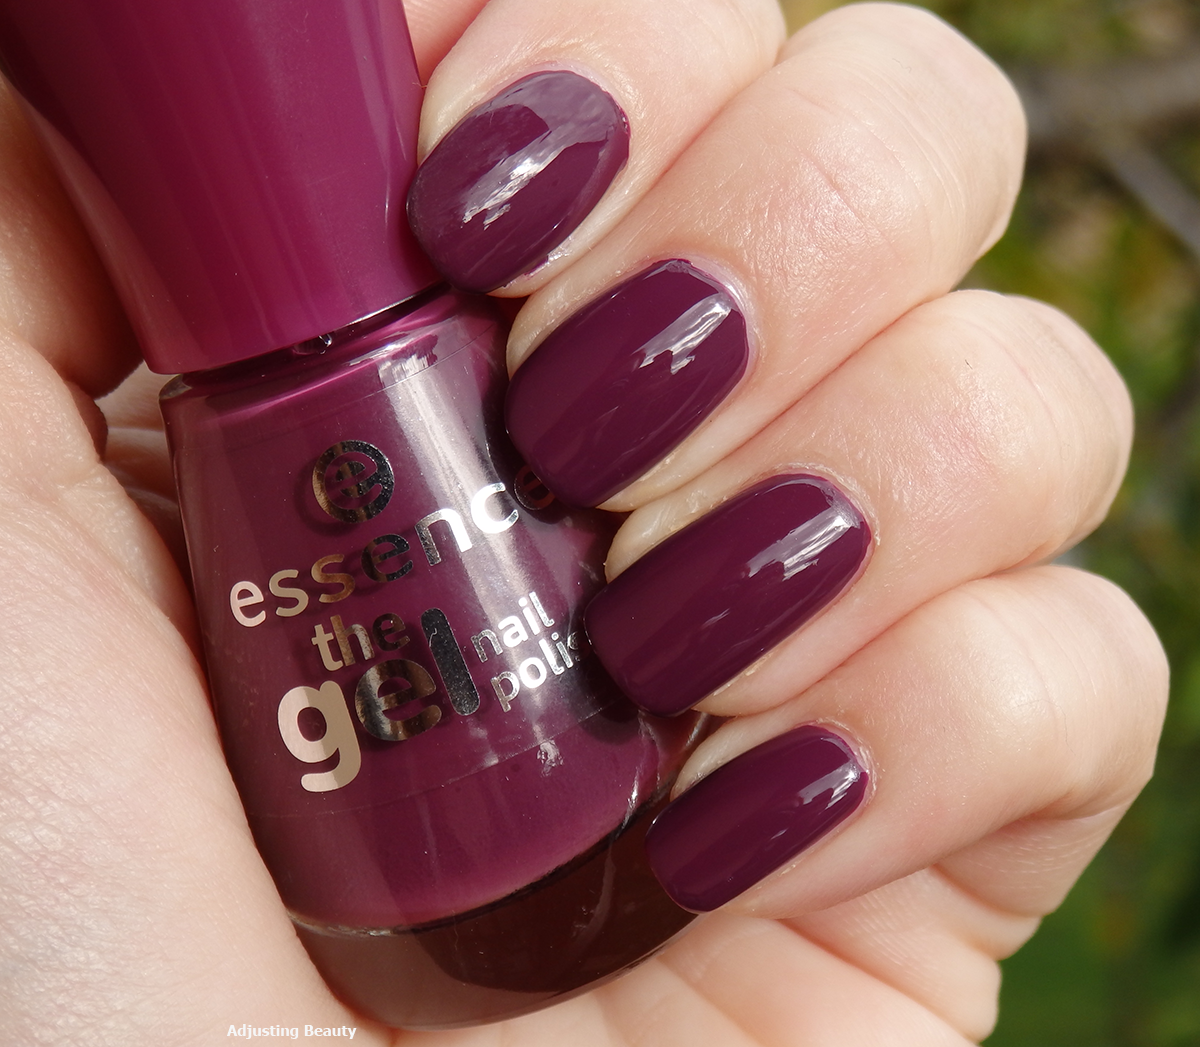 Hey Beauties A Few Weeks Ago I Got This Beautiful Autumnal Plum Nail Polish It Was A Gift By Lovely T Nail Polish Essence Nail Polish Essence Gel Nail Polish